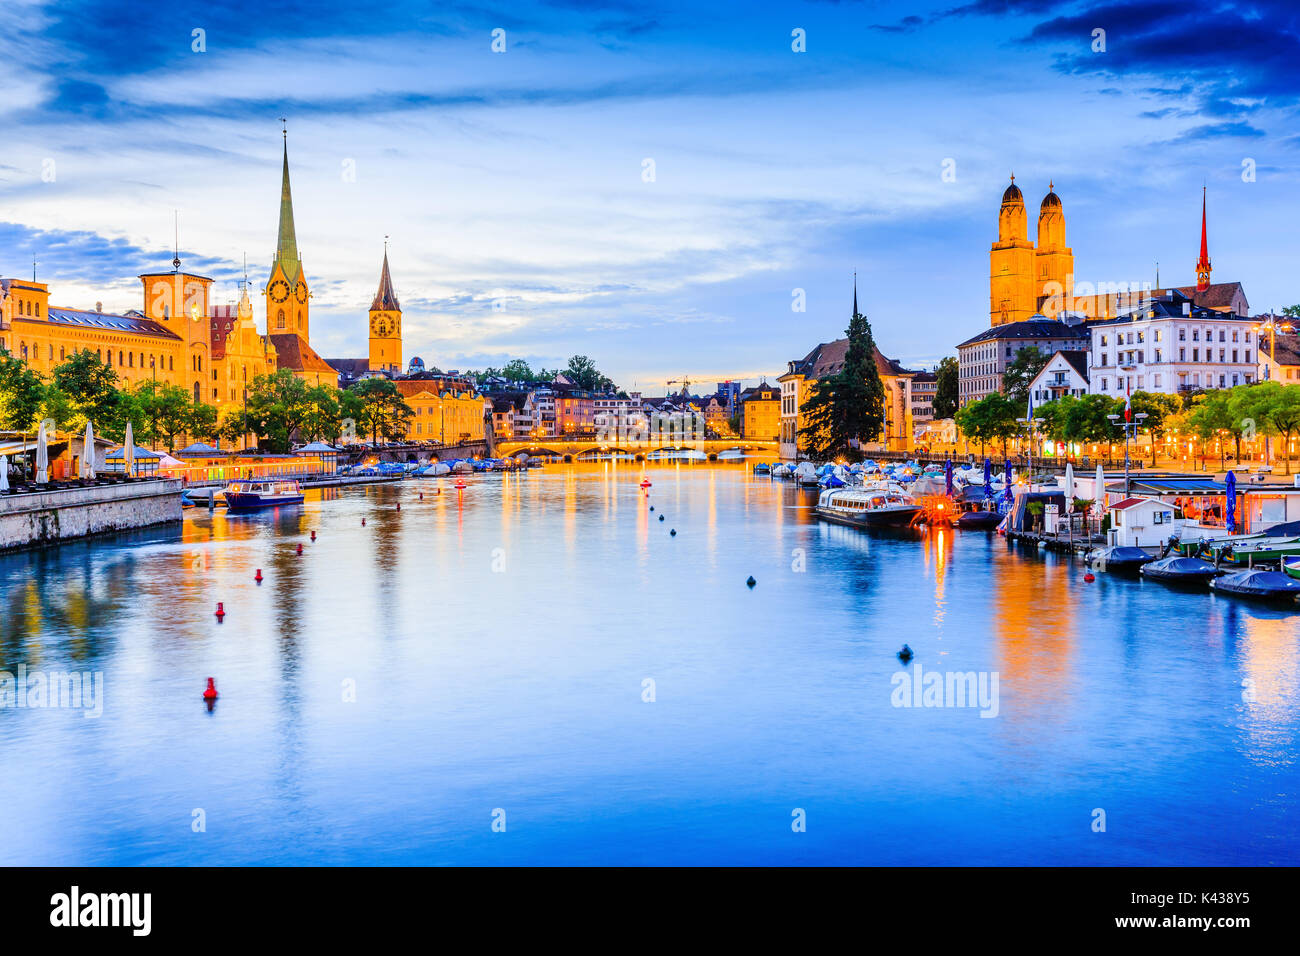 Zurich, Switzerland. View of the historic city center. Grossmunster Church and Fraumunster Church on the Limmat - Stock Image